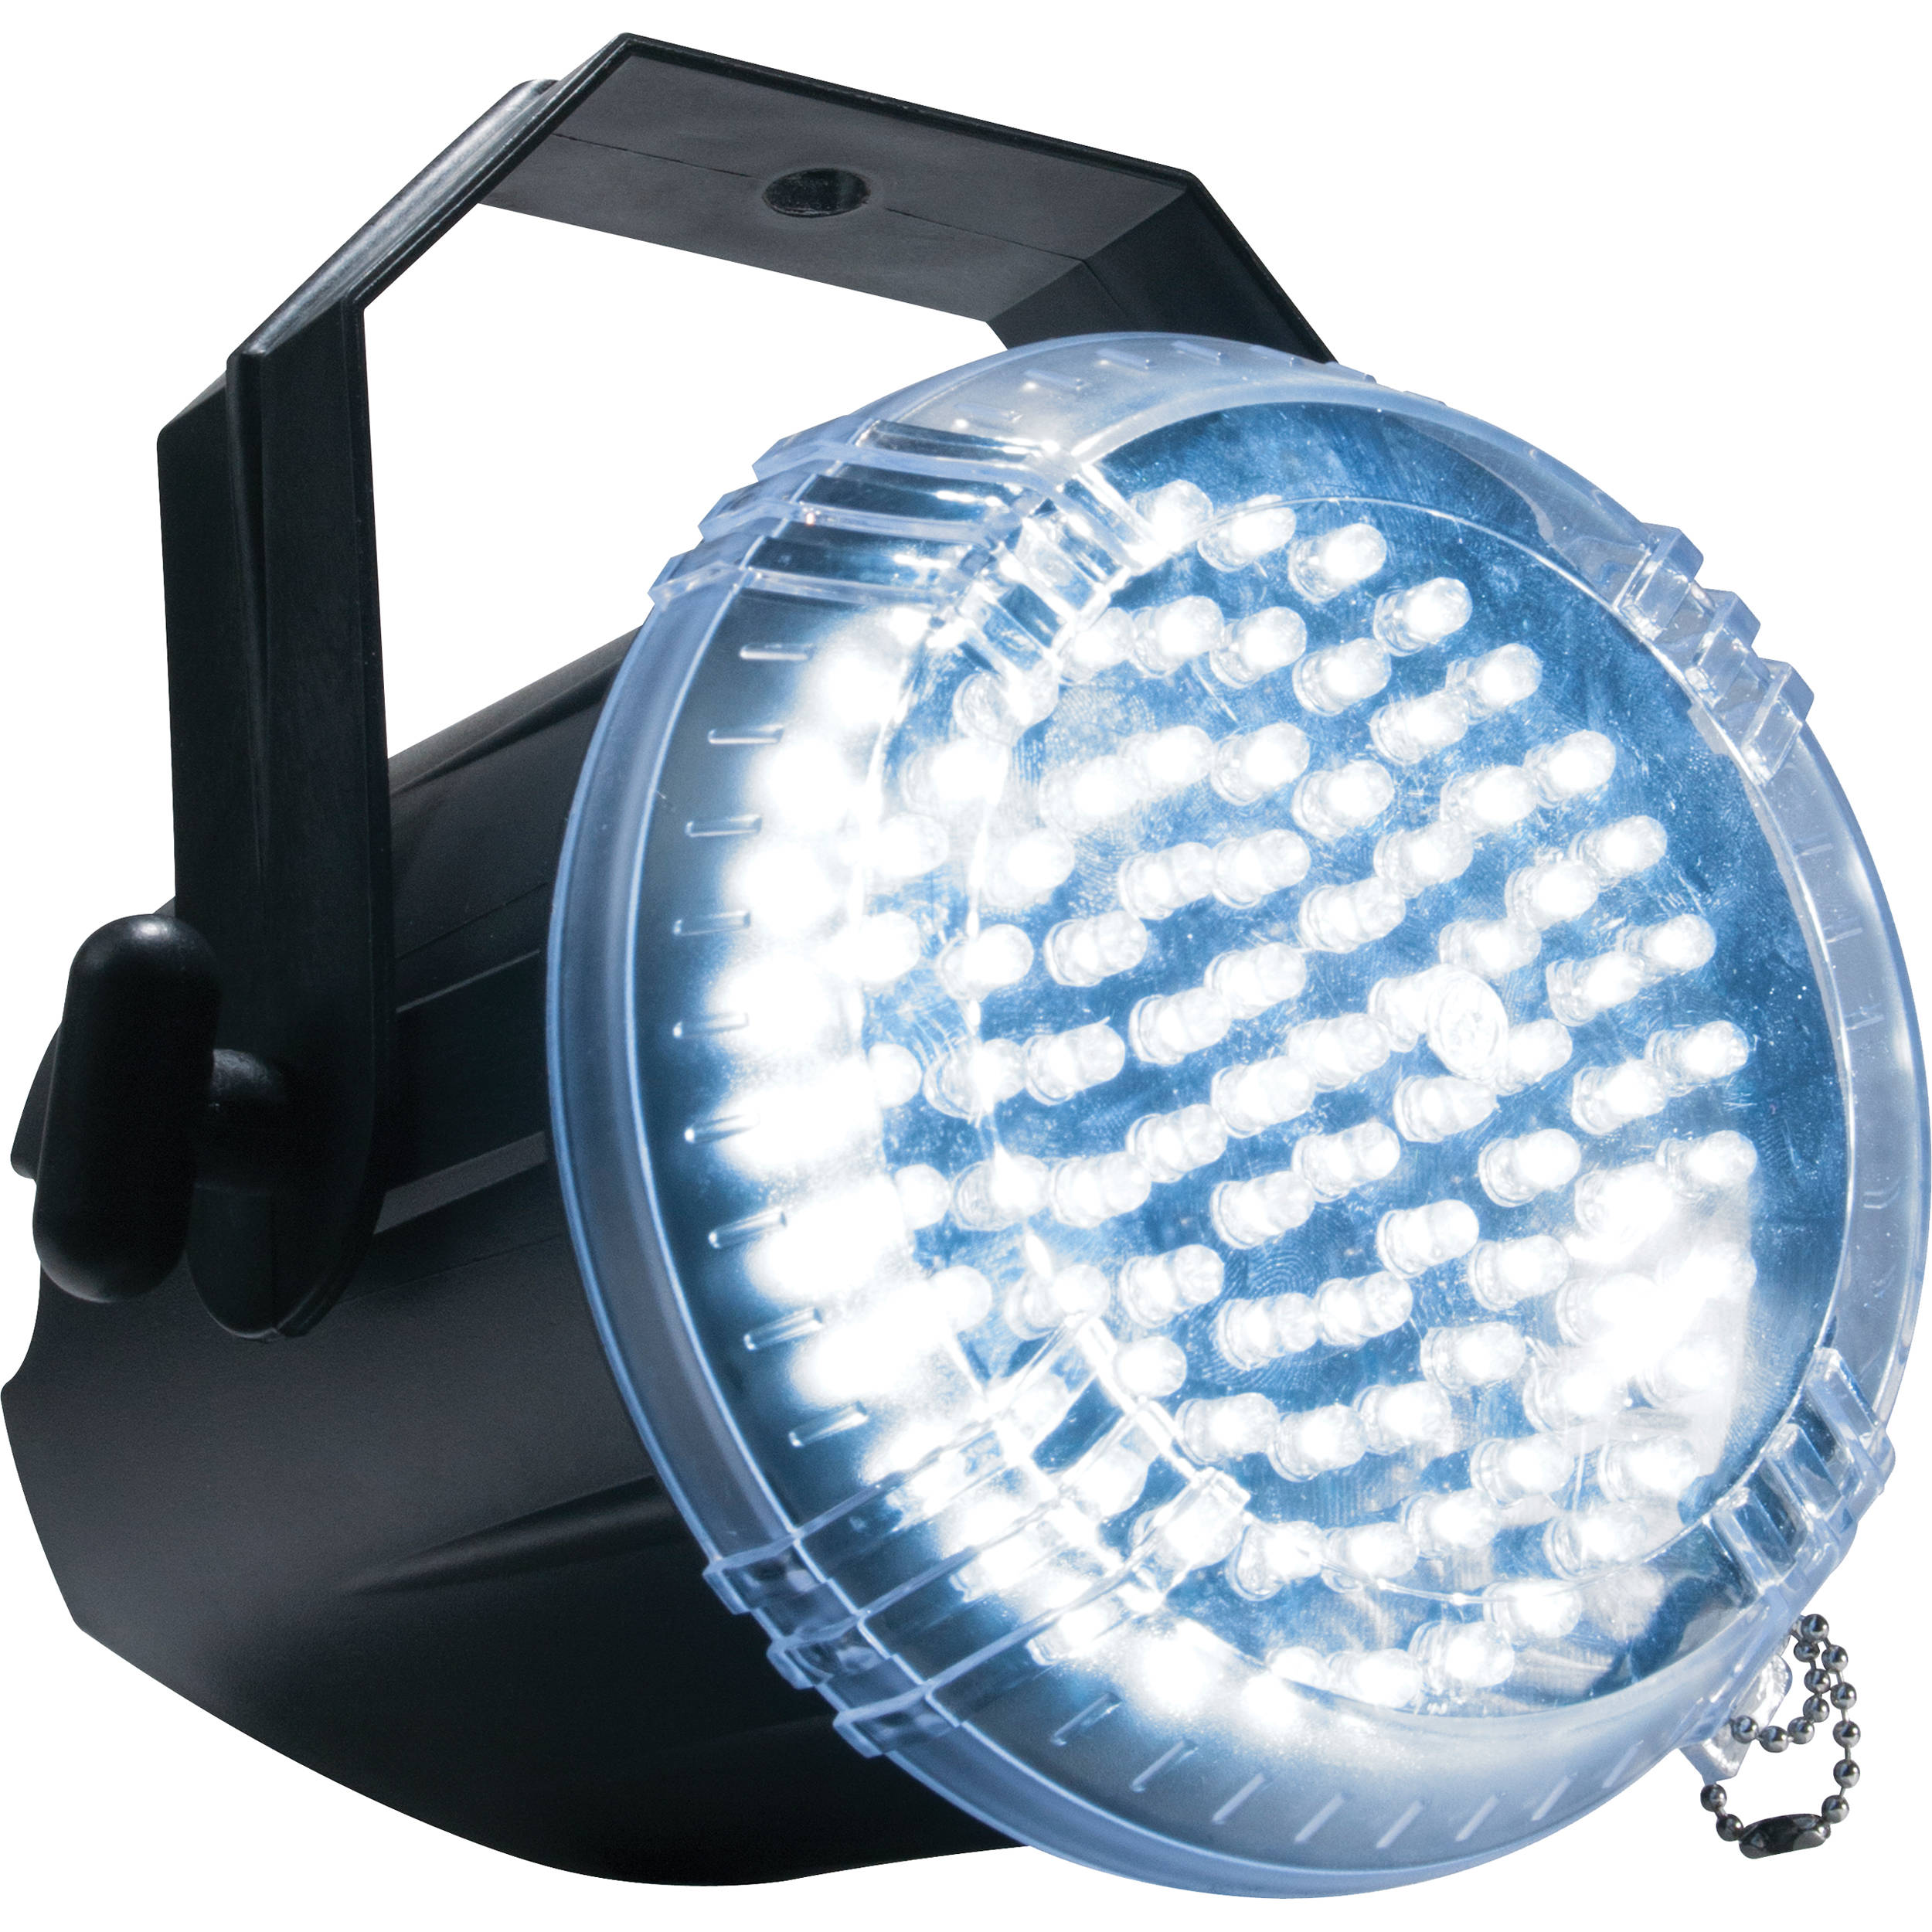 American Dj Big Shot Led Ii White Strobe Bh Also Found A Circuit That Strobes The Leds Like Police Lights